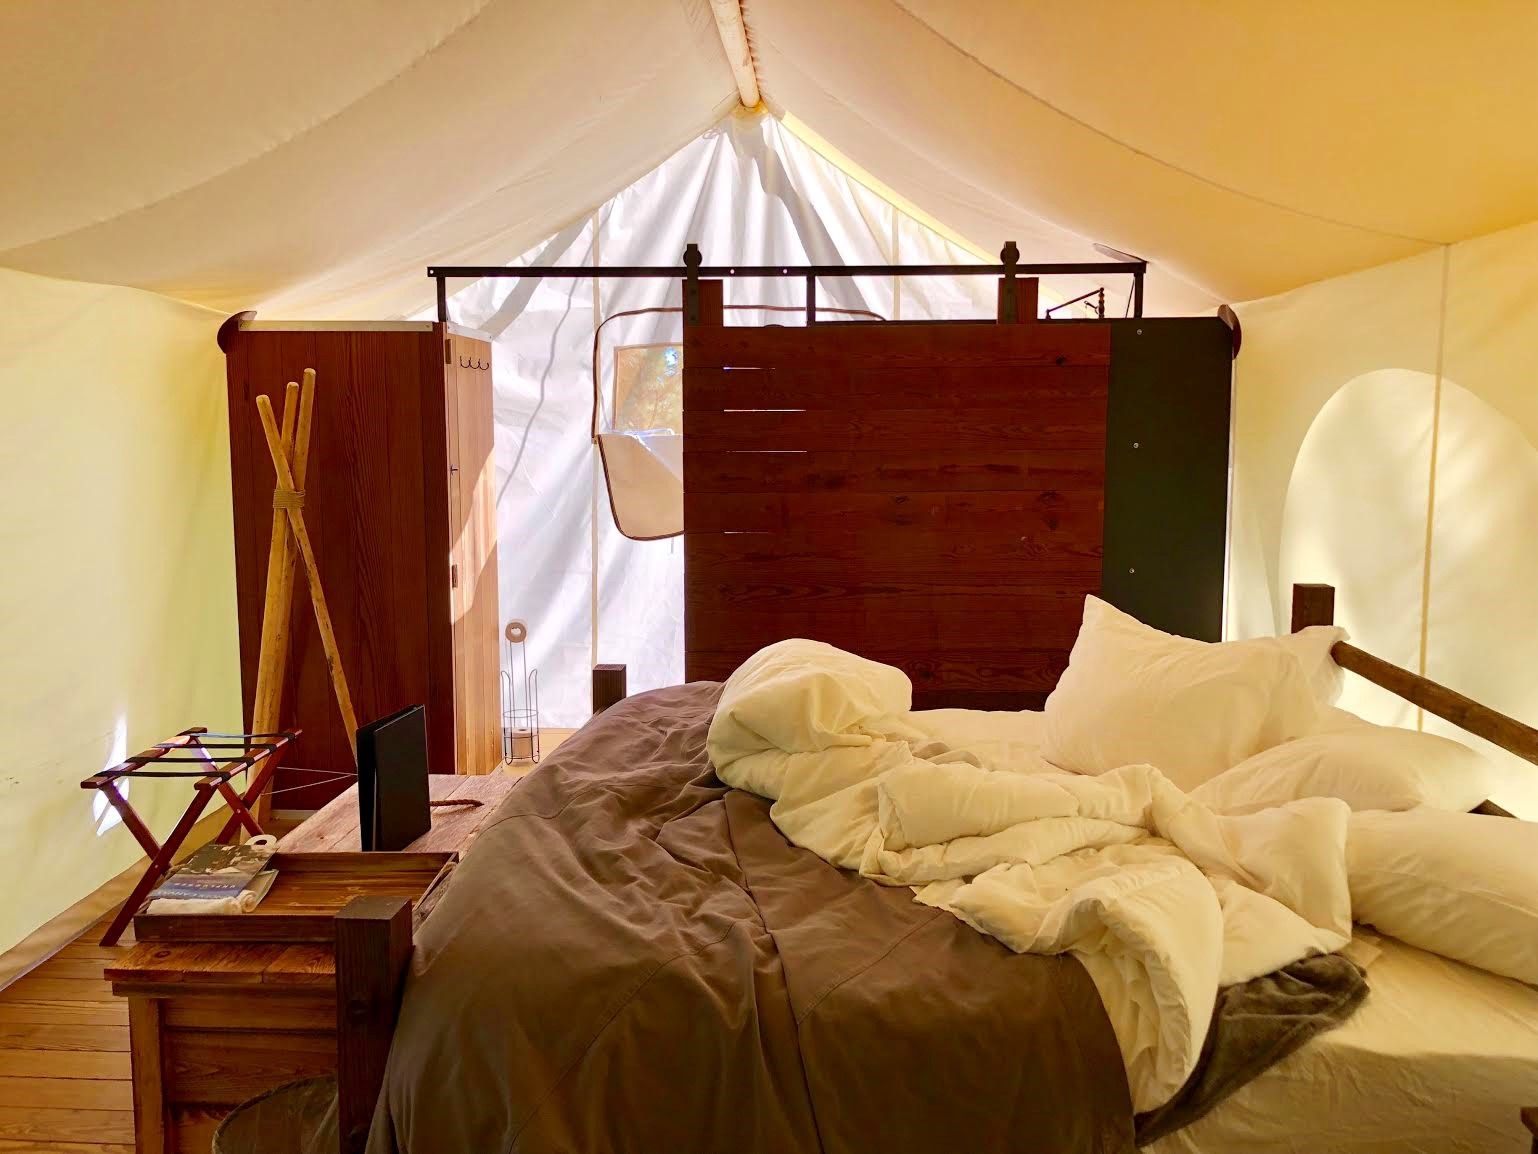 Glamping under the stars, with a touch of posh style